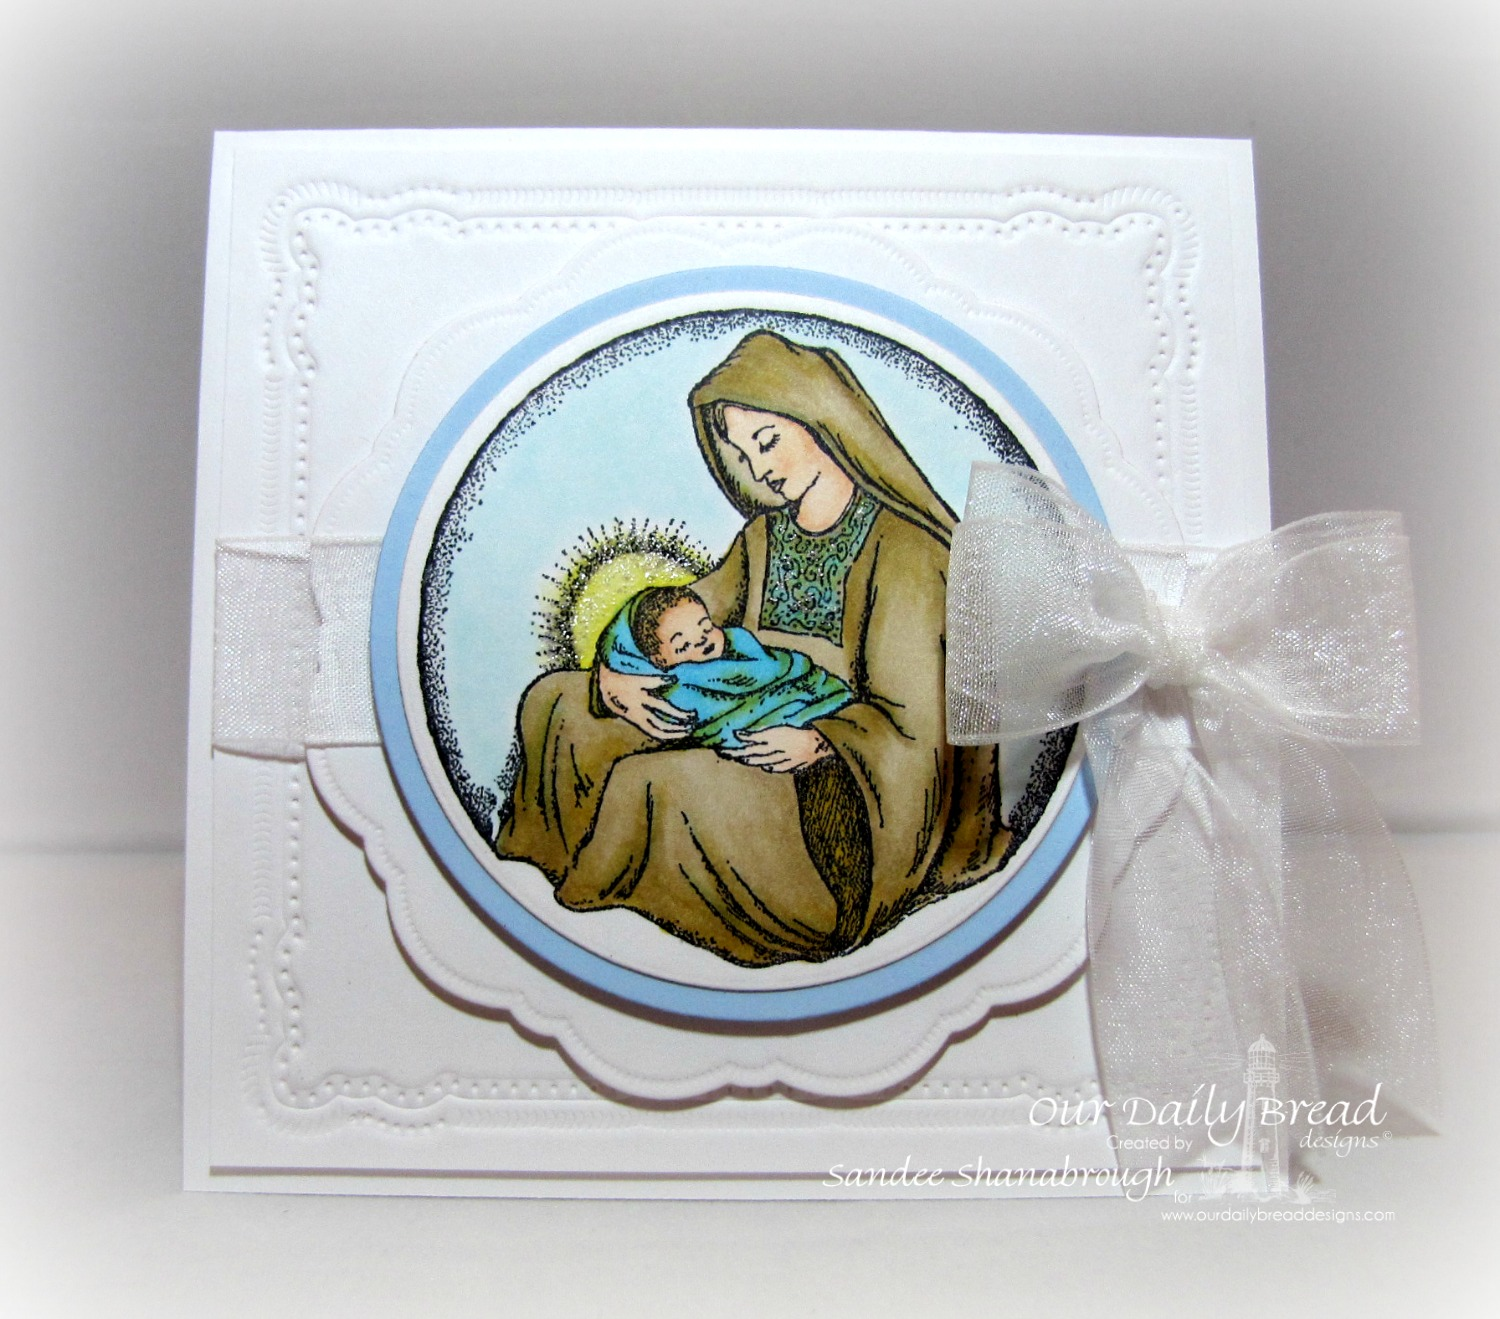 Stamps - Our Daily Bread Designs Mother and Child Ornament, ODBD Custom Matting Circles Dies, ODBD Custom Circle Ornaments Dies, ODBD Custom Doily Dies